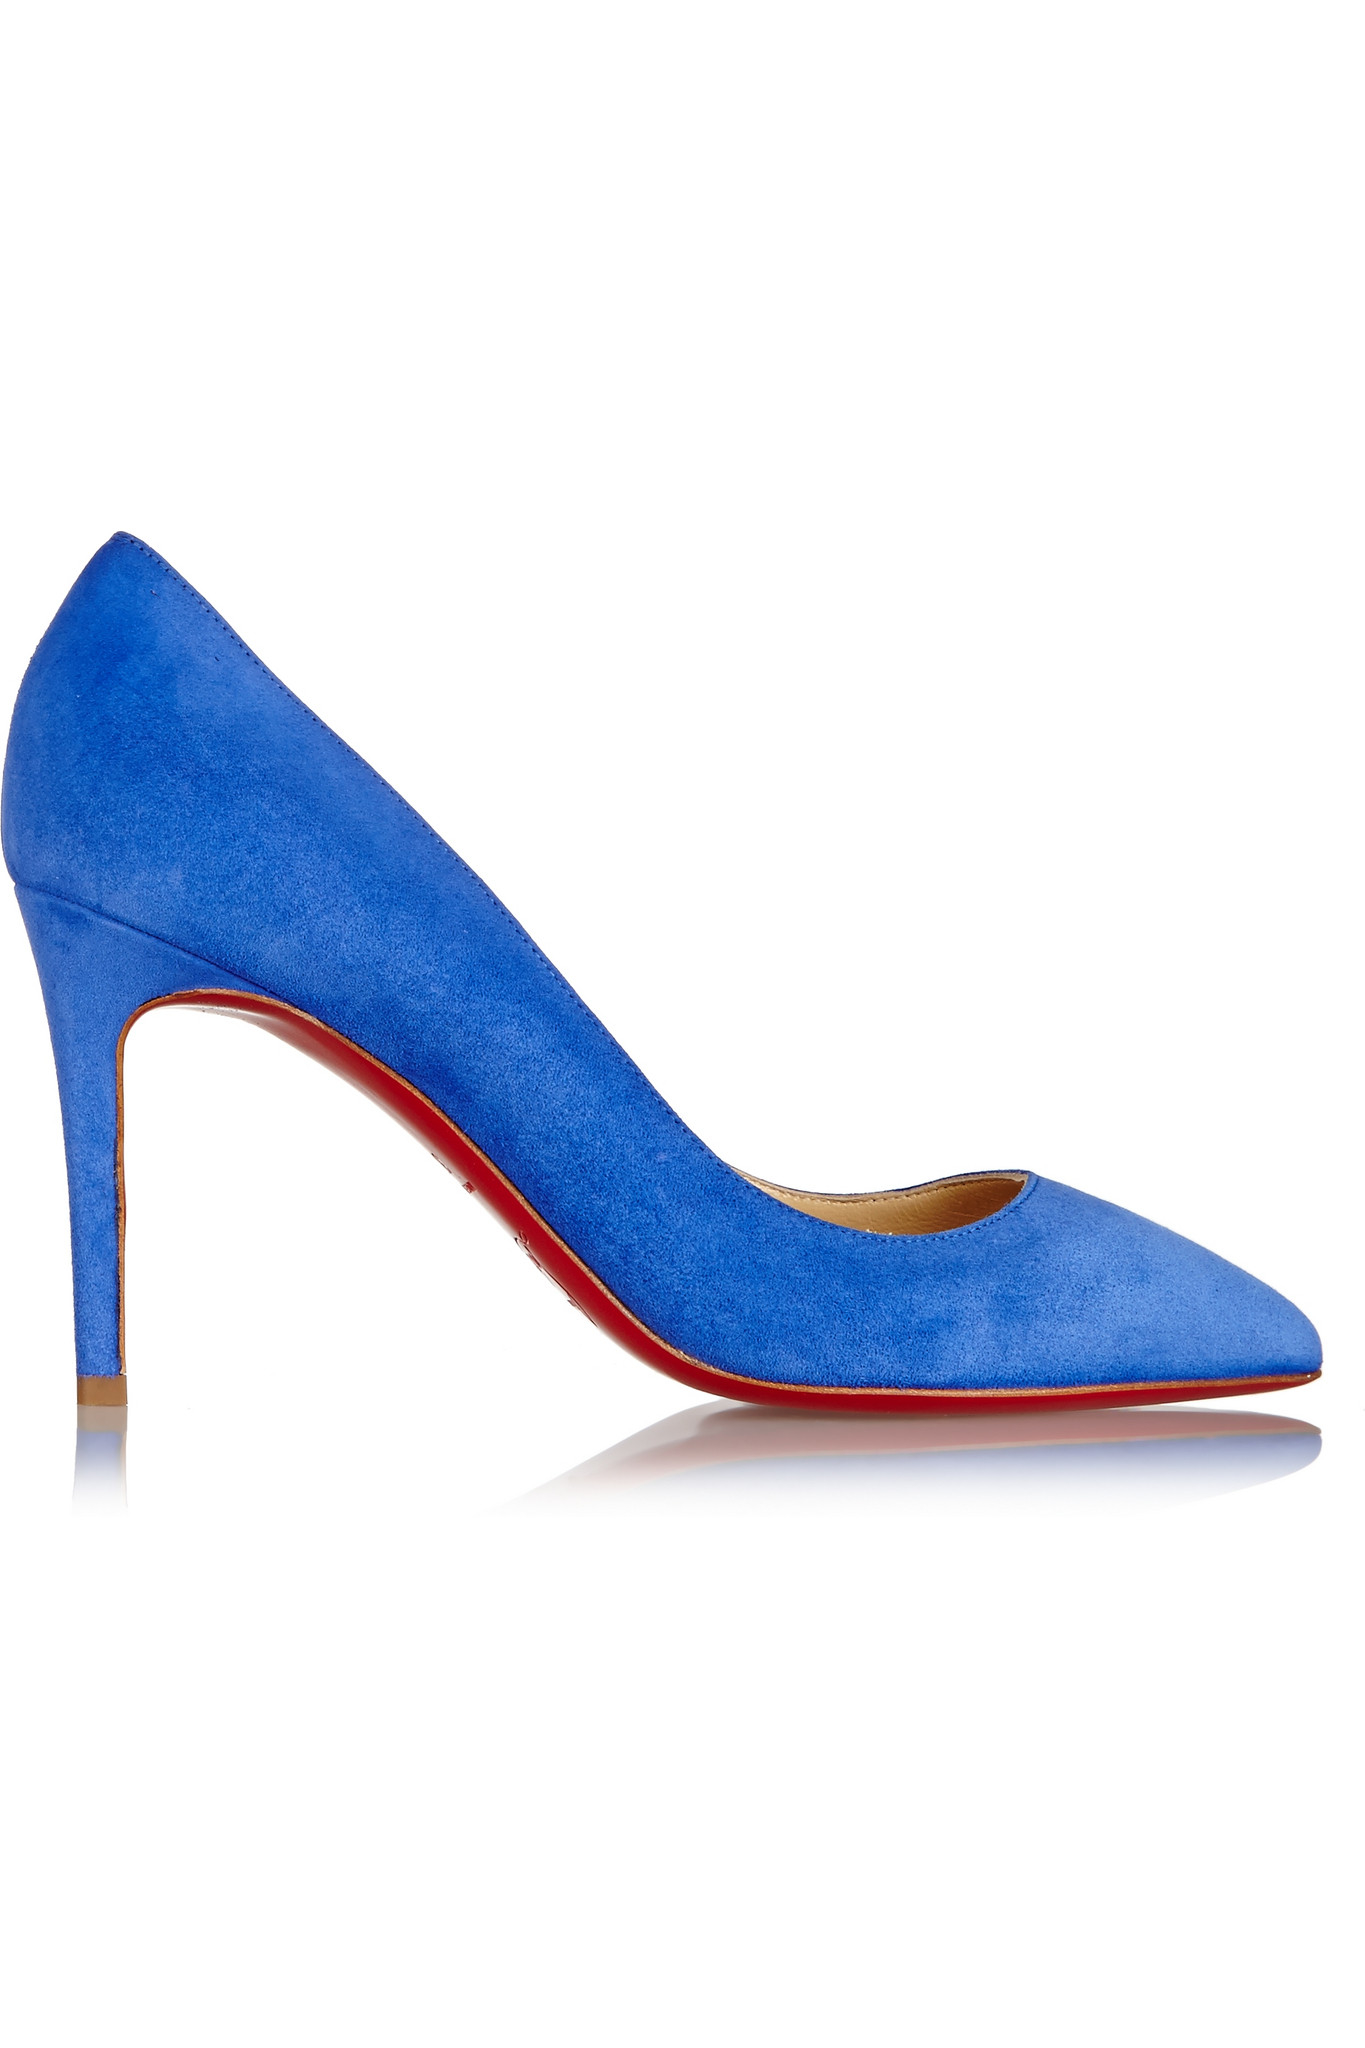 31840cdf7b8d Christian Louboutin Pigalle 85 Suede Pumps in Blue - Lyst